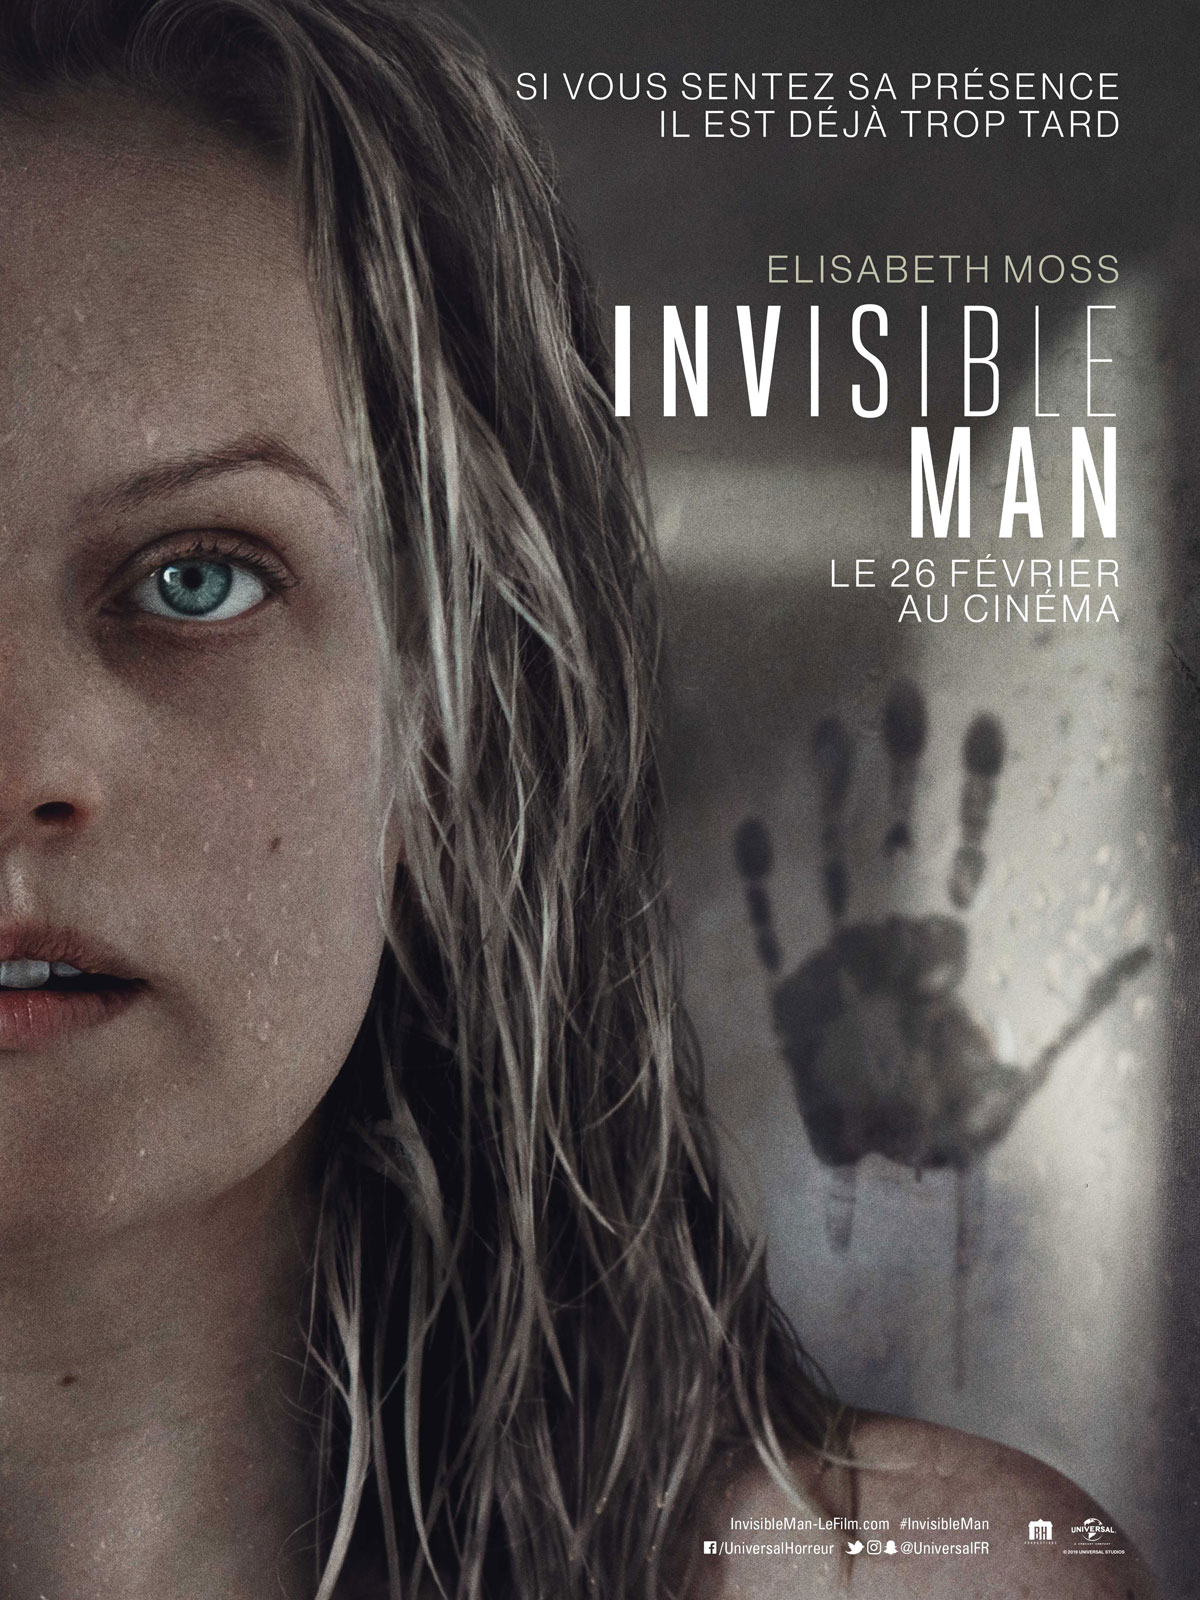 Achat Invisible Man en DVD - AlloCiné